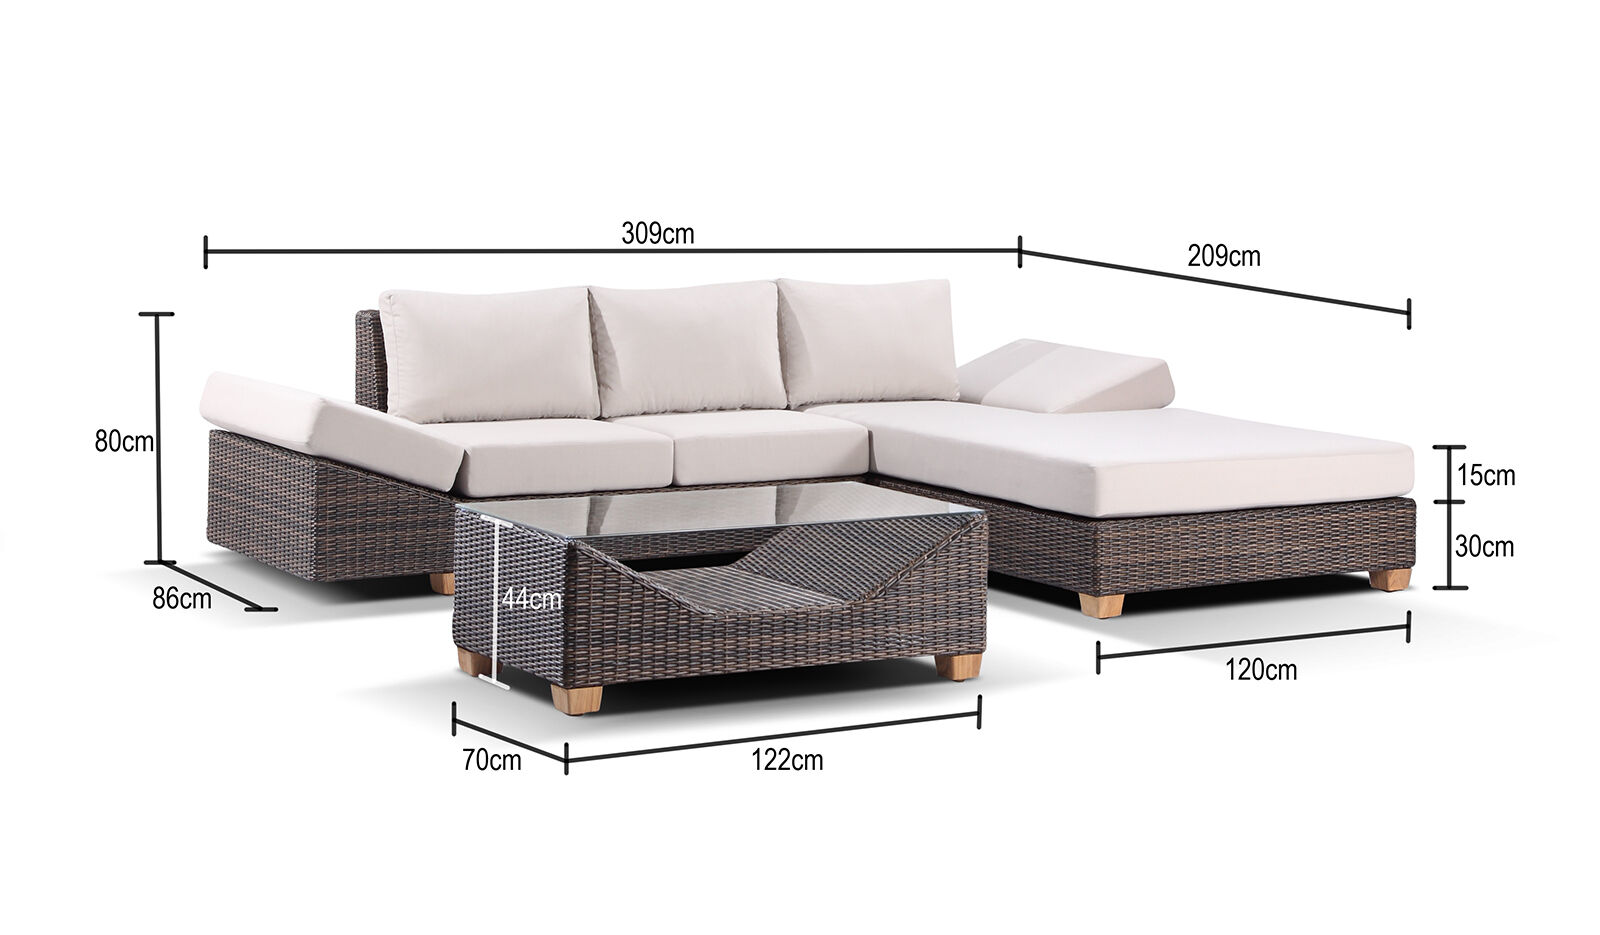 Sofa Lounge Gold Coast Details About Huge Outdoor Wicker Rattan Sofa Corner Chaise Lounge Couch Day Bed Furniture Set